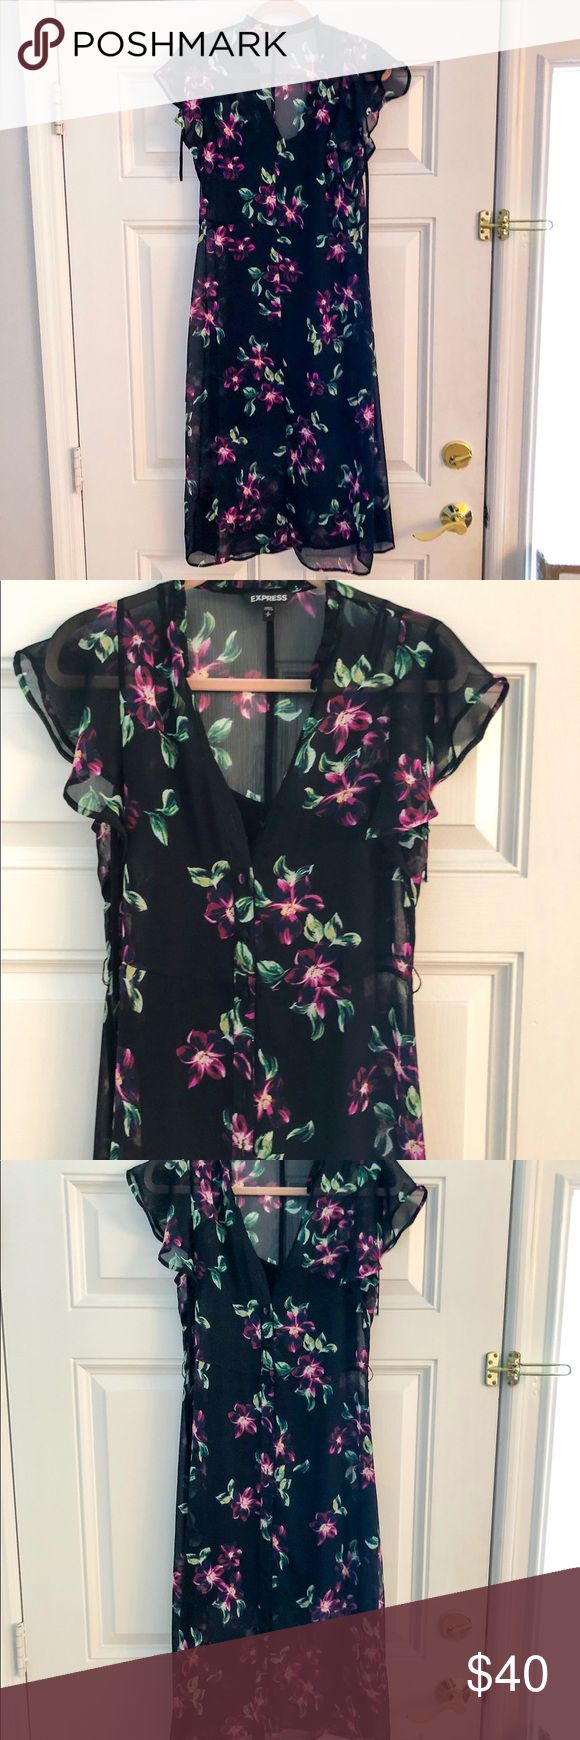 Express Floral Flutter Sleeve Dress, size 6! Express Floral Flutter Sleeve Midi Dress, size 6.  Worn only once and in perfect condition!  Semi-sheer fabric drapes dramatically over your curves, while a tie-neck adds dimension to your look. Pair with your favorite sandals and sparkly jewelry for a sultry, feminine ensemble. Midi length Tie-neck; v-neck Short sleeves Full button front; semi-sheer; straight hem Polyester Hand wash Express Dresses